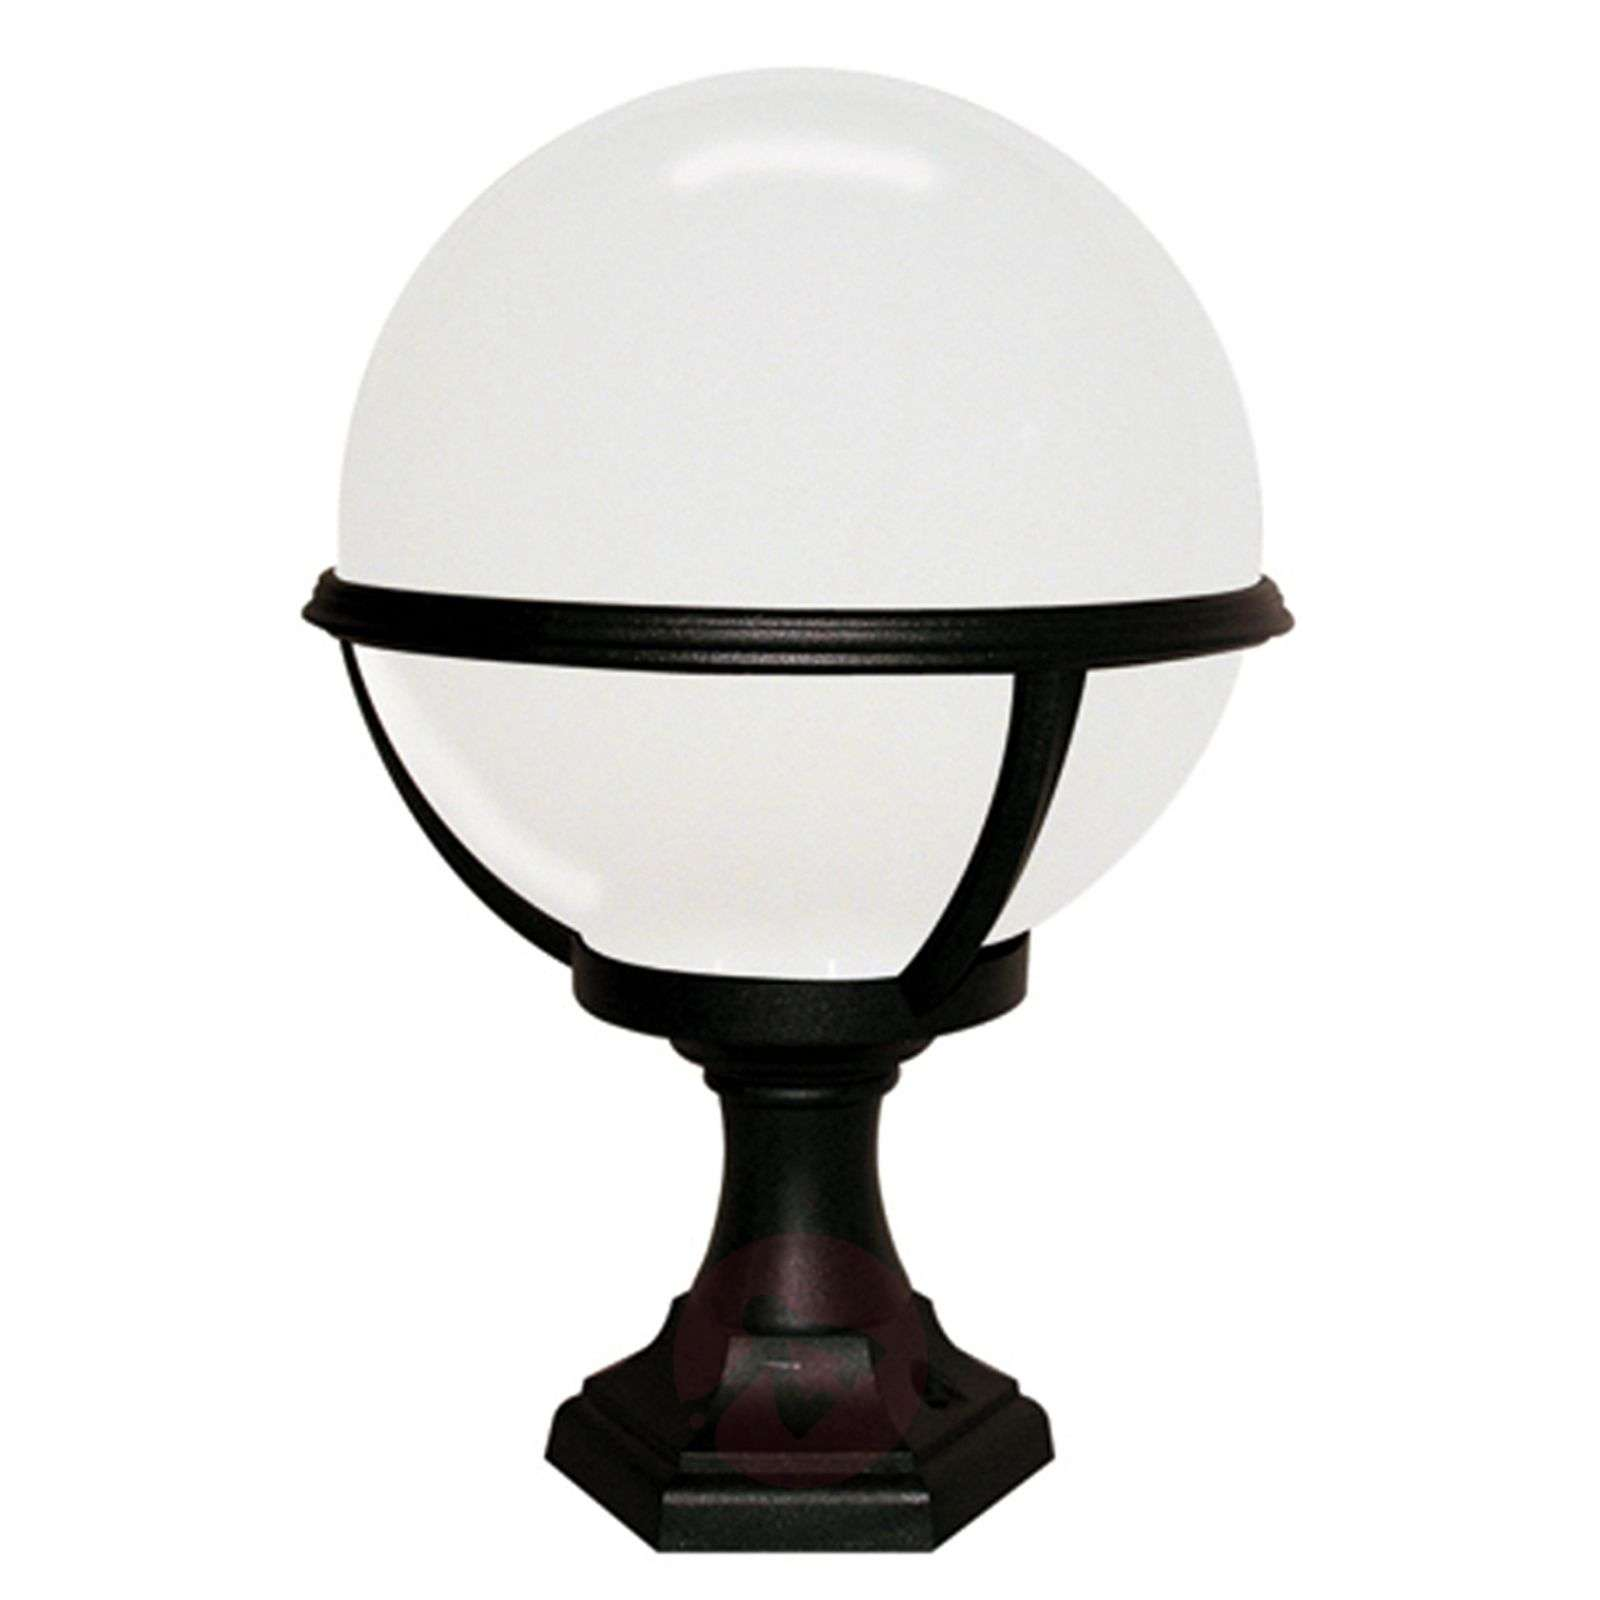 Glenbeigh salt water-resistant pillar light-3048408-01